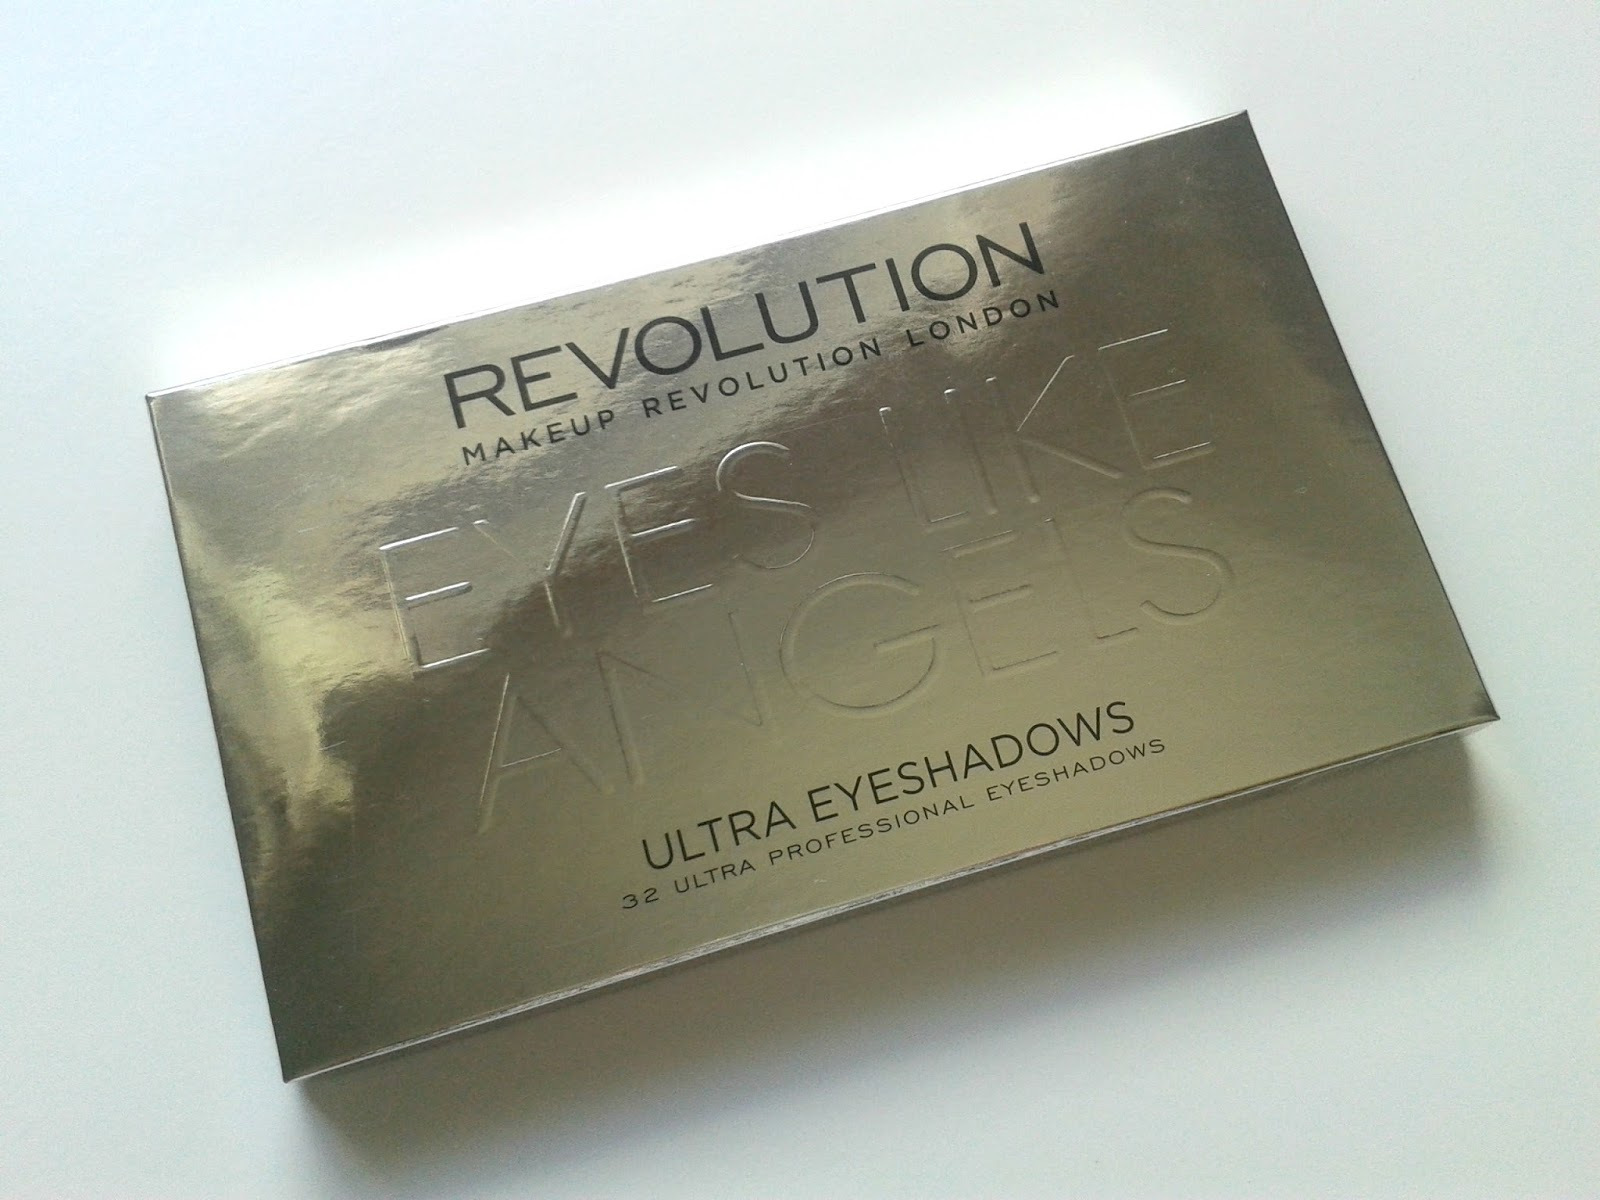 Makeup Revolution Eyes Like Angels Ultra 32 Shade Eyeshadow Palette Box Beauty Review